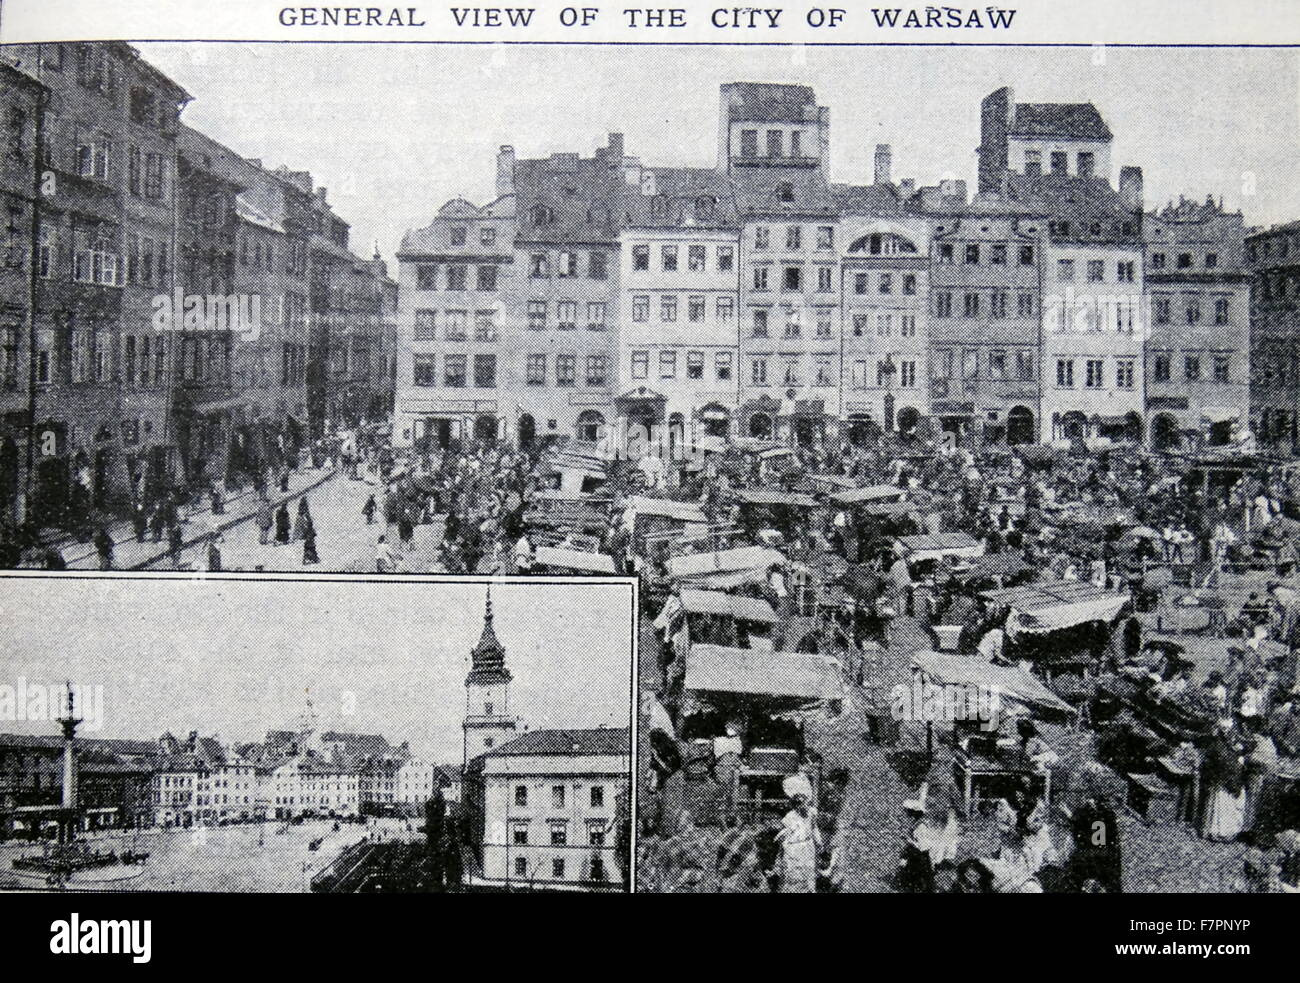 Antique print of the city of Warsaw Poland. Dated 1915 - Stock Image